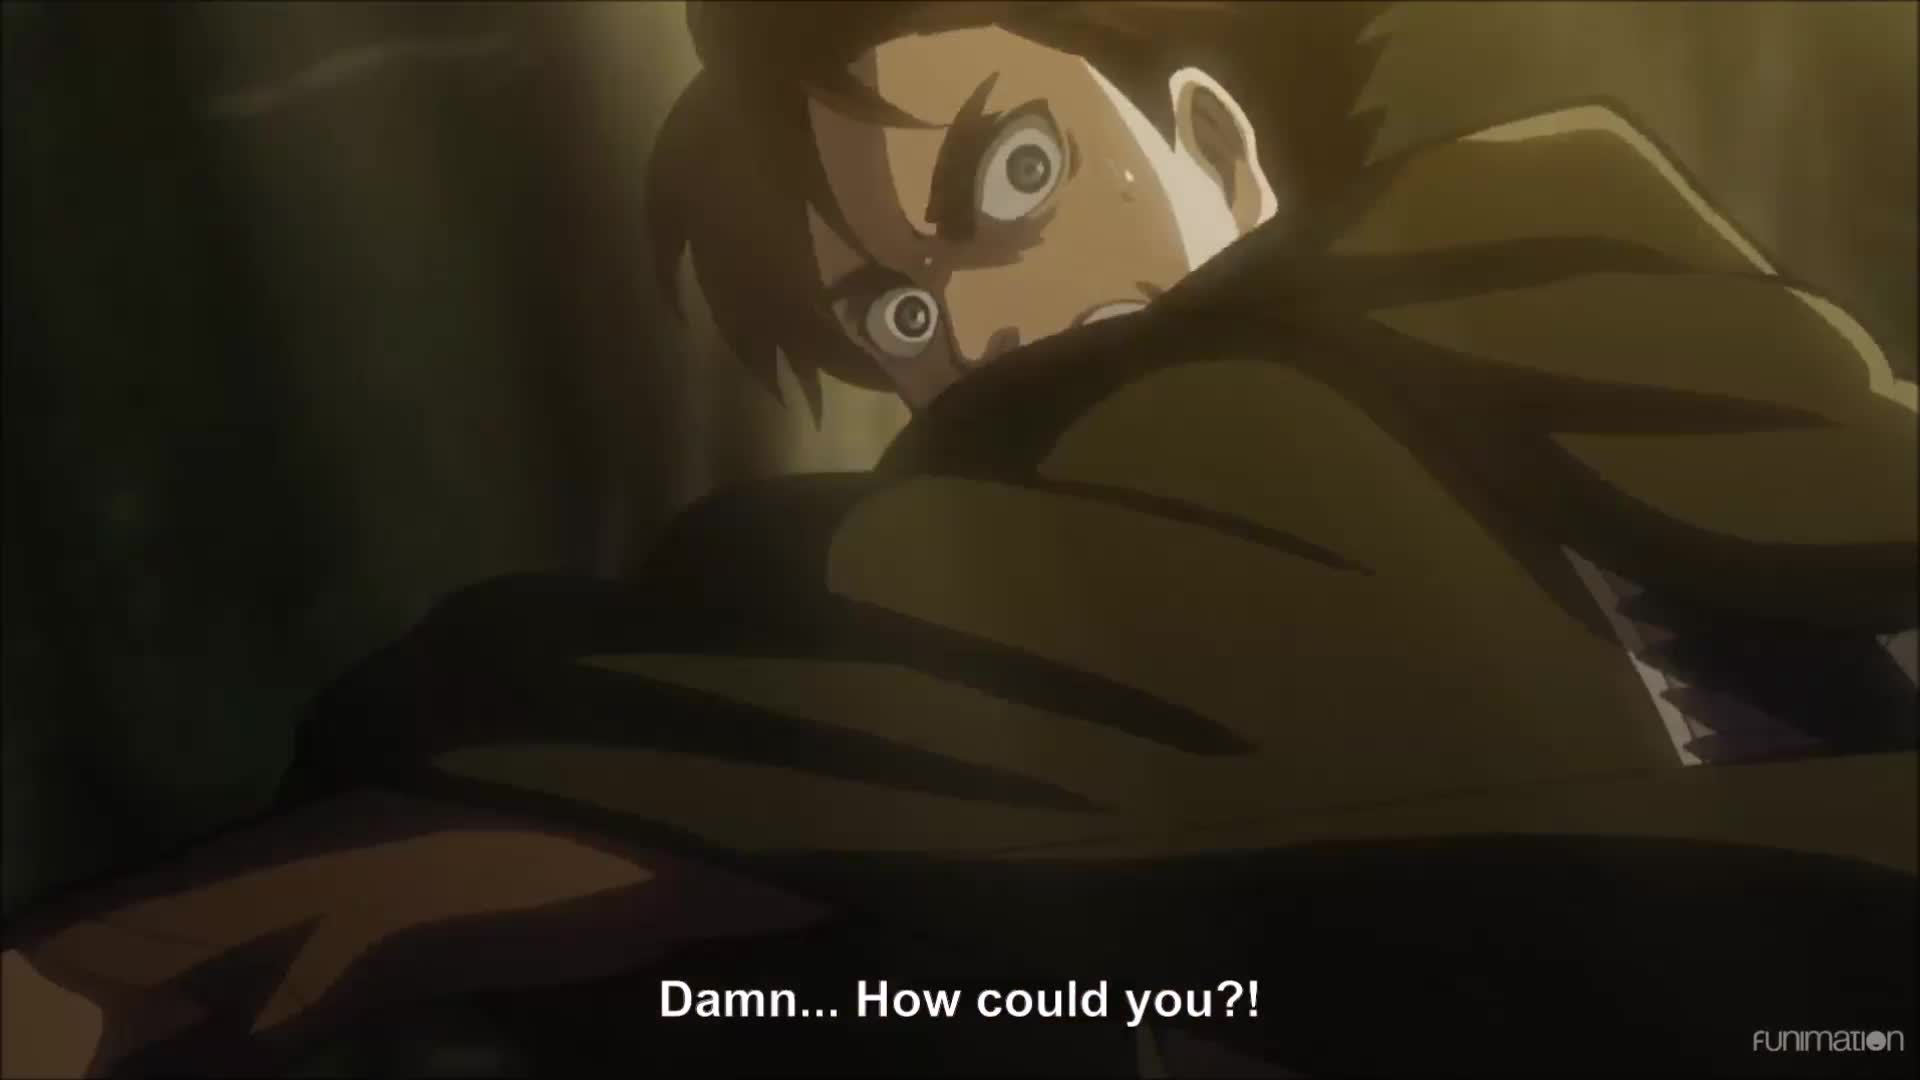 Anime, Attack on Titan Episode 21, AttackonTitan, AttackonTitanEpisode21, Dark Fantasy, Funimation, Shingeki no Kyojin, ShinkgekinoKyojin, Shounen, Shounen Anime, post apocalyptic, steampunk, Eren is ready to throw down. Attack on Titan  Ep 21 GIFs